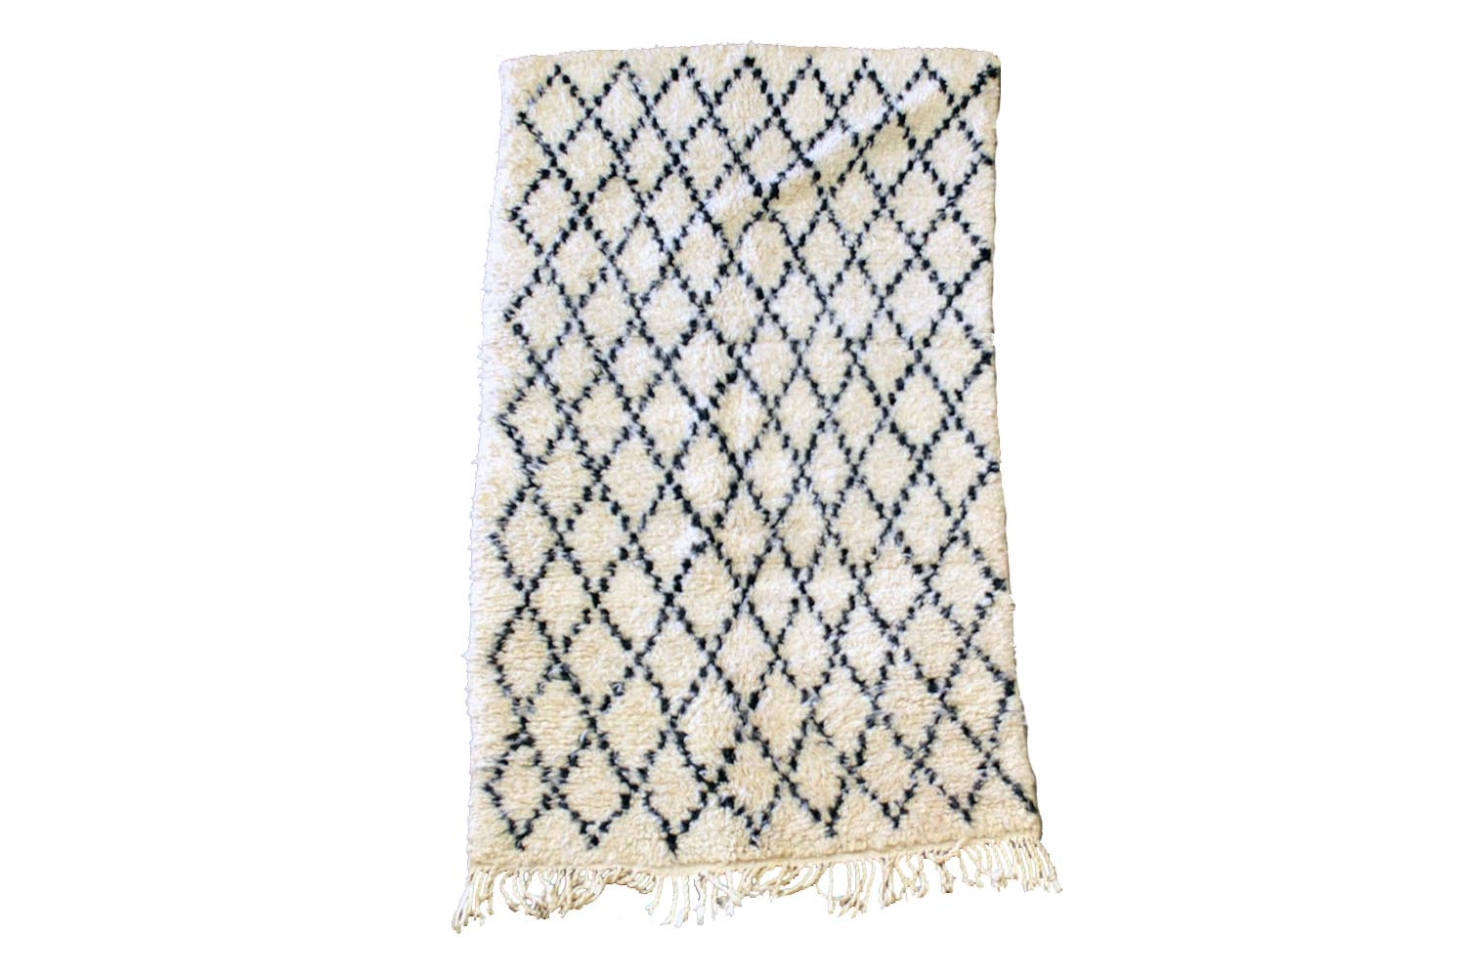 The Vintage Beni Ourain Rug handmade by Berber peoples in the Atlas Mountains of Morocco is £493 at SCP.